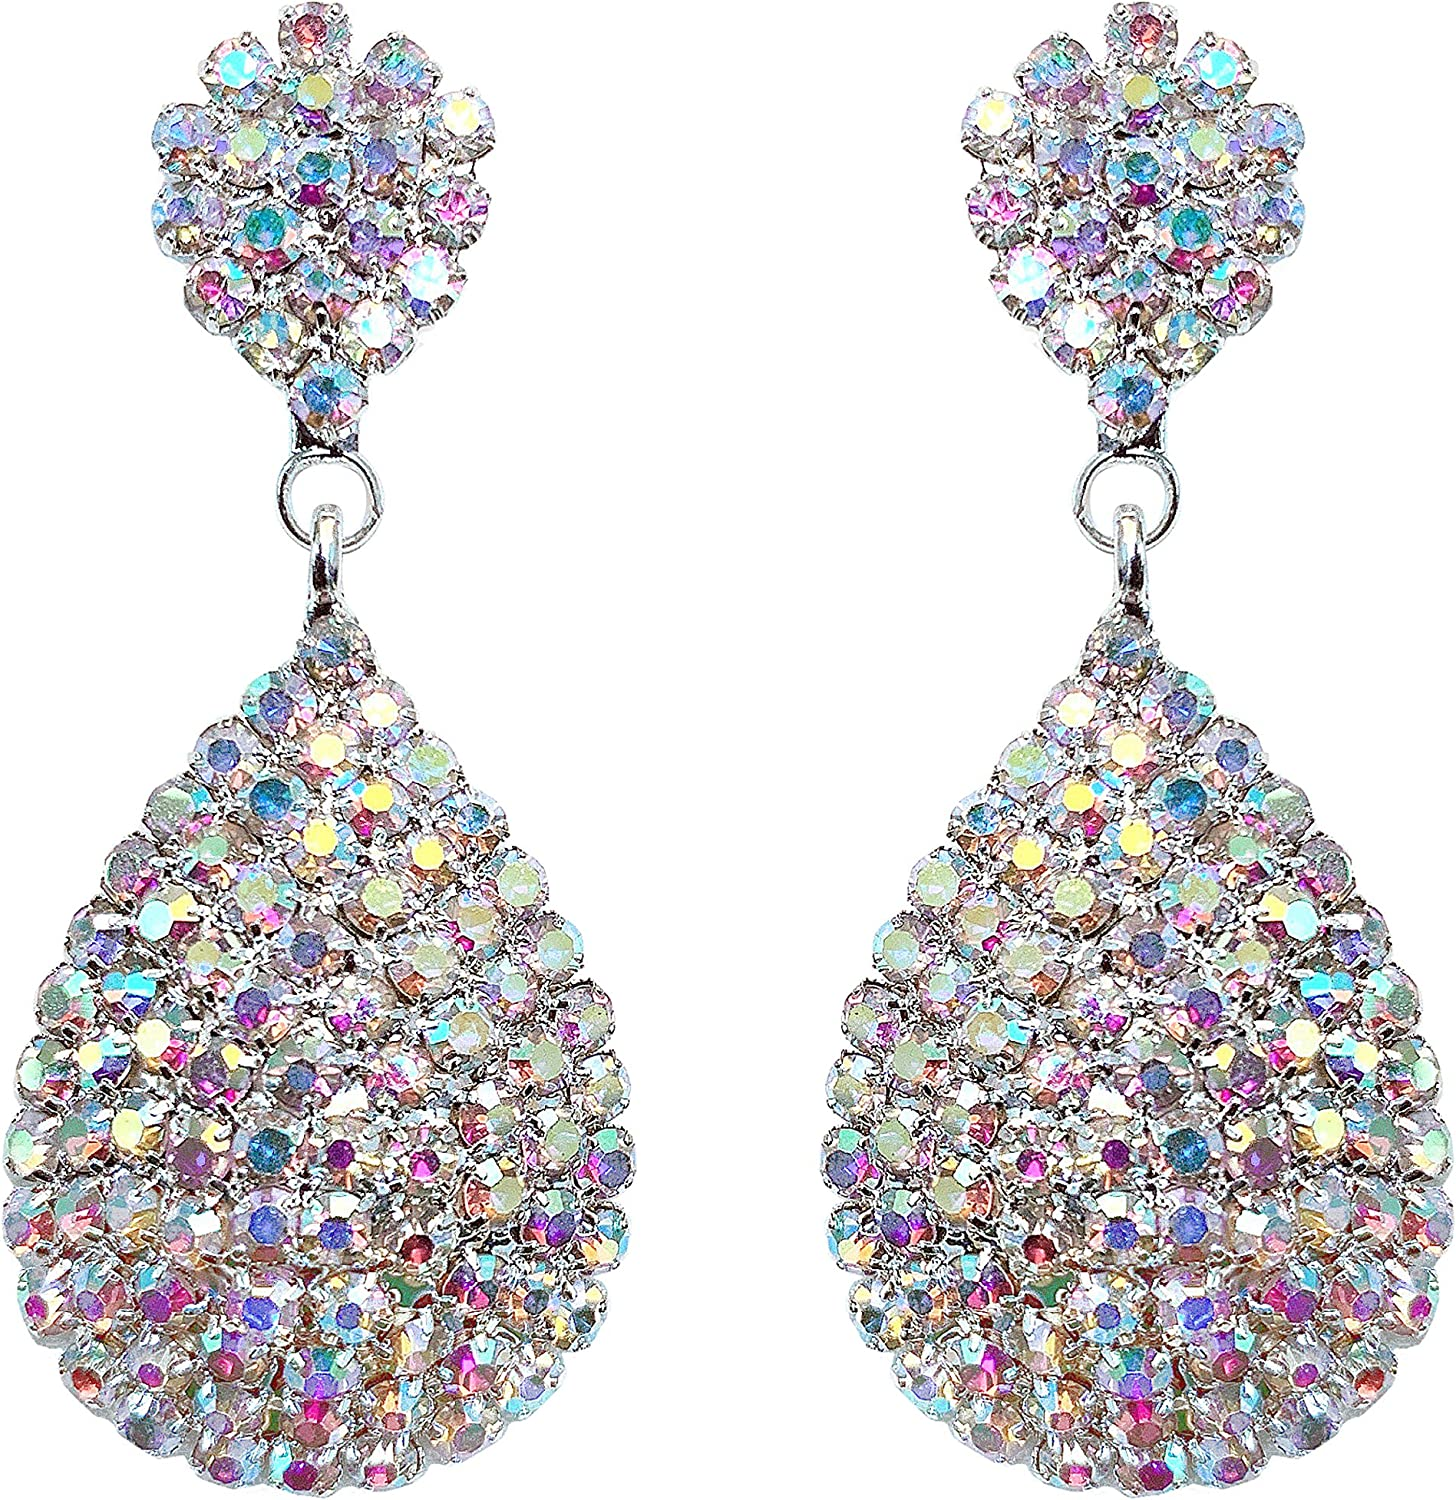 Sparkling Triple strand Aurora Borealis iridescent necklace and wired cluster earring set bridal formal classy elegant